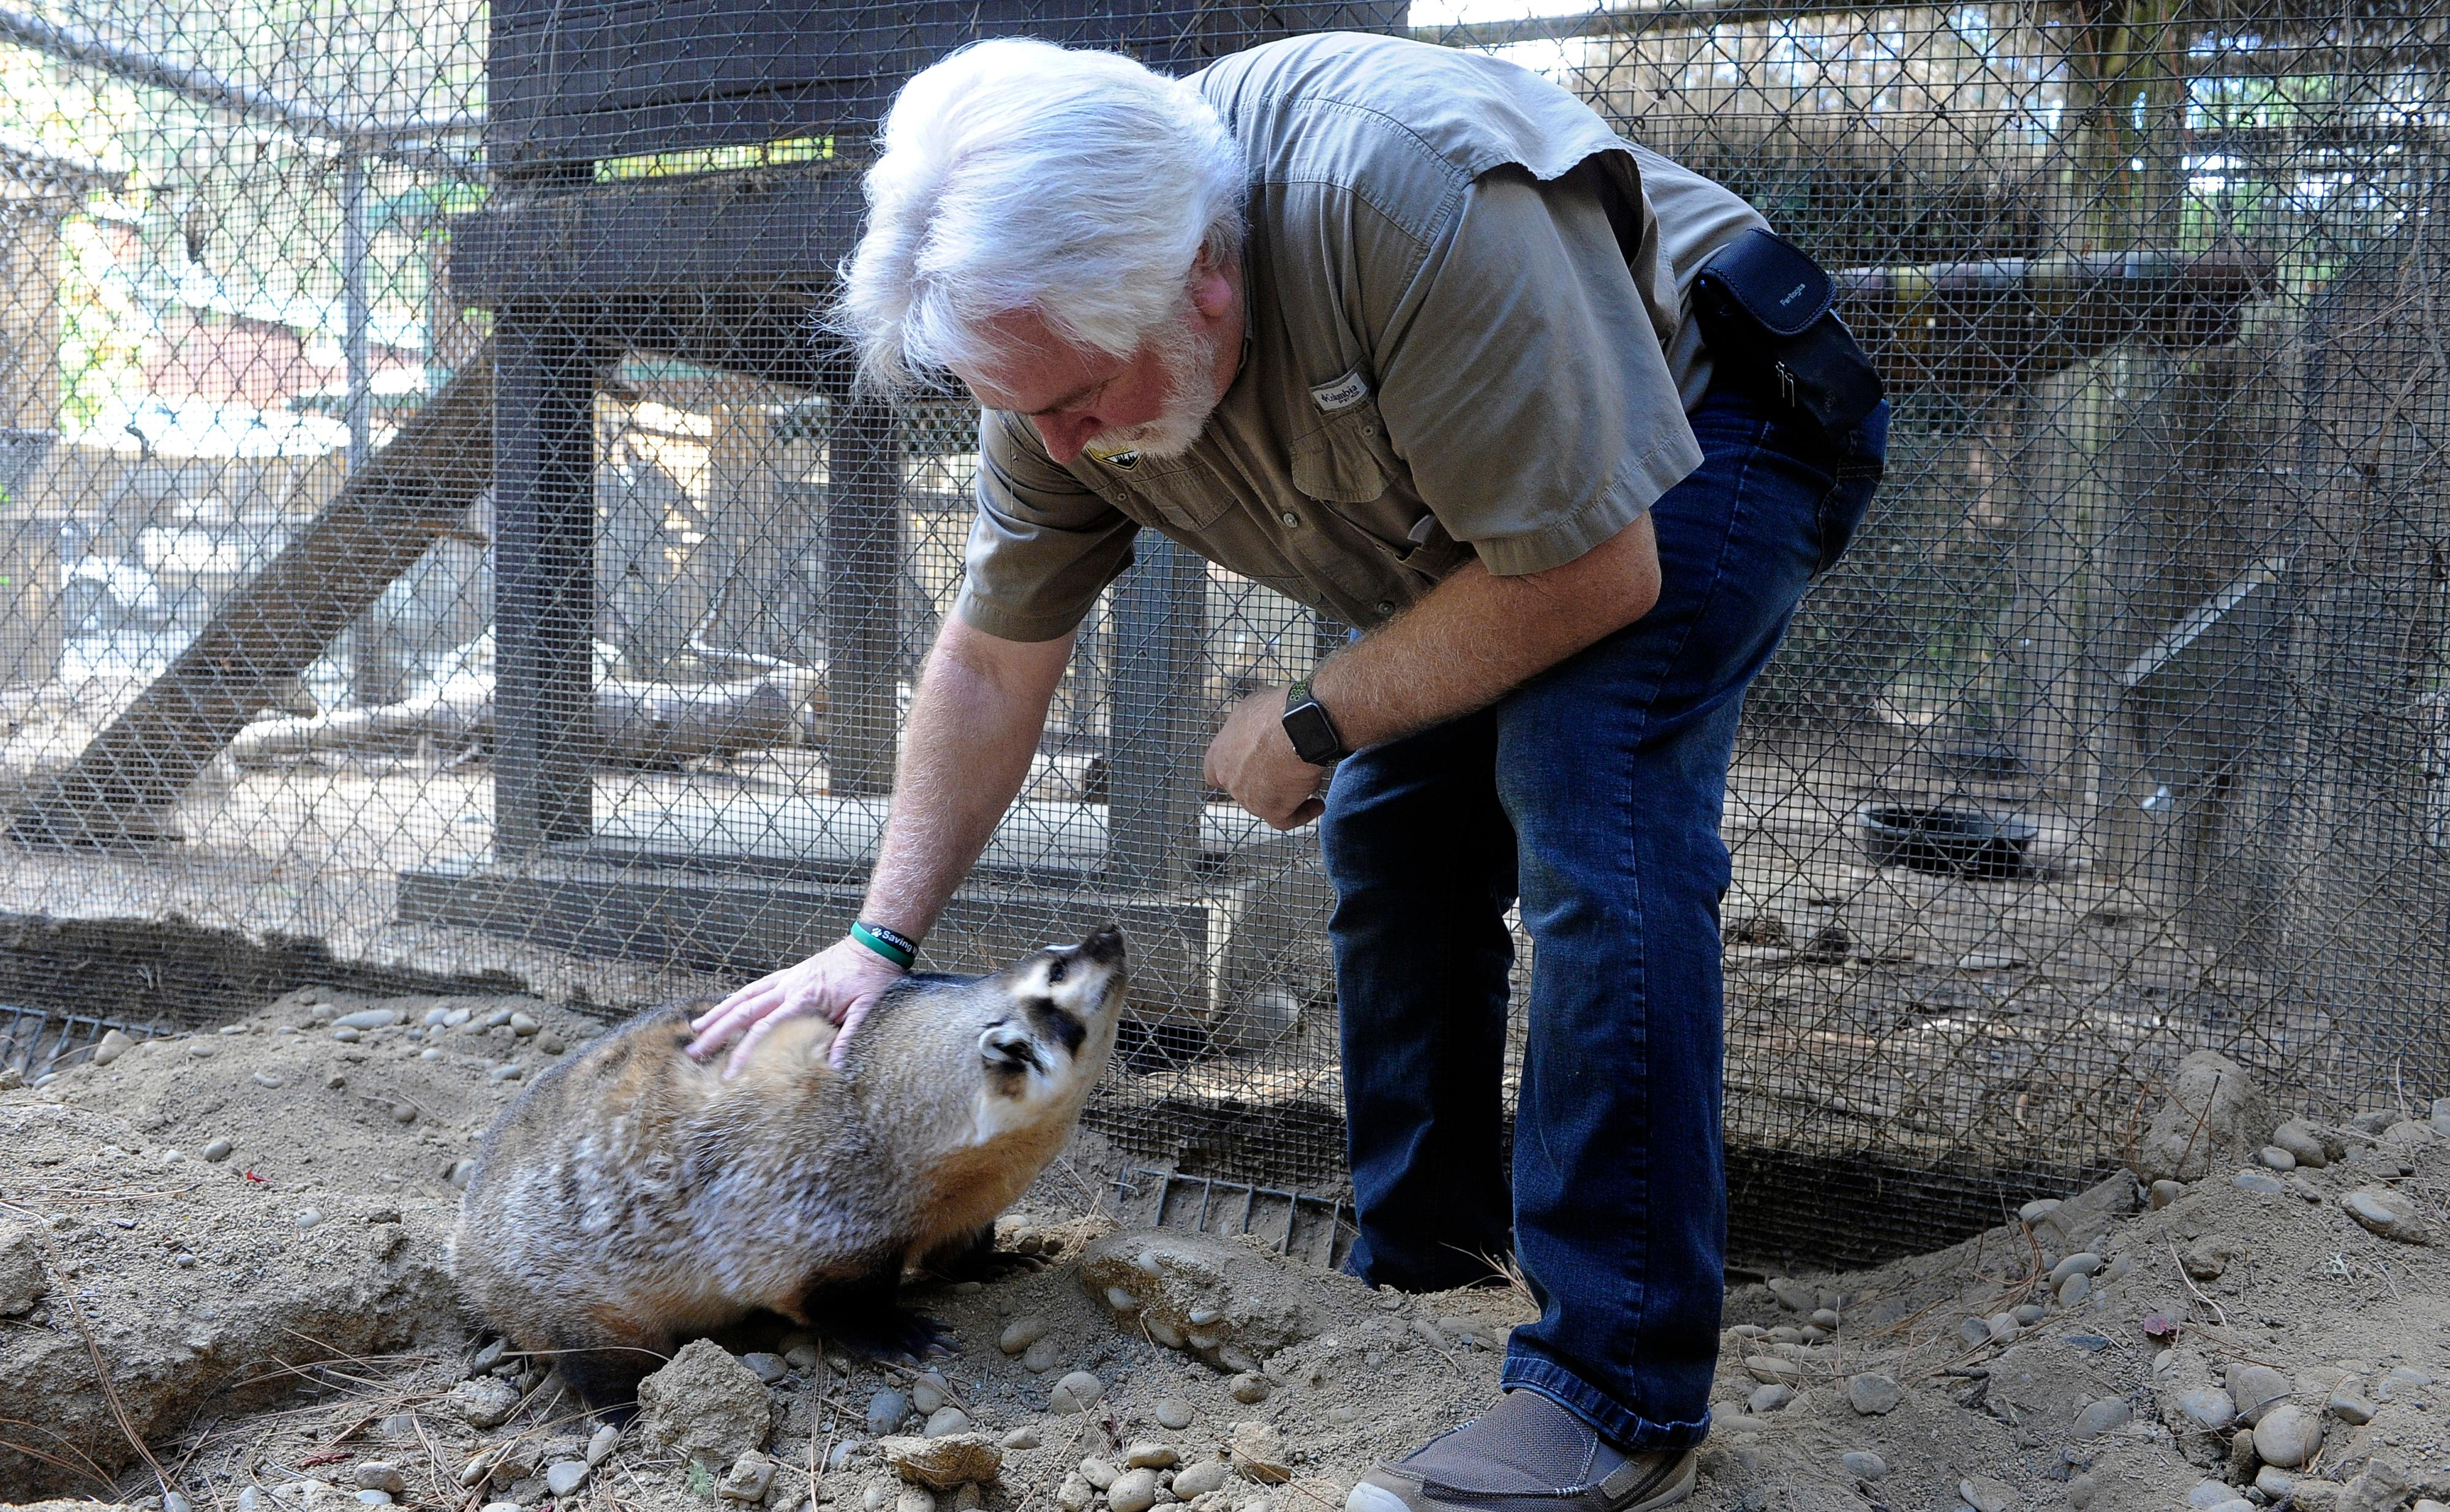 Andy Atkinson / Mail Tribune{ } David Siddon plays with a badger named Nubs at Wildlife Images.